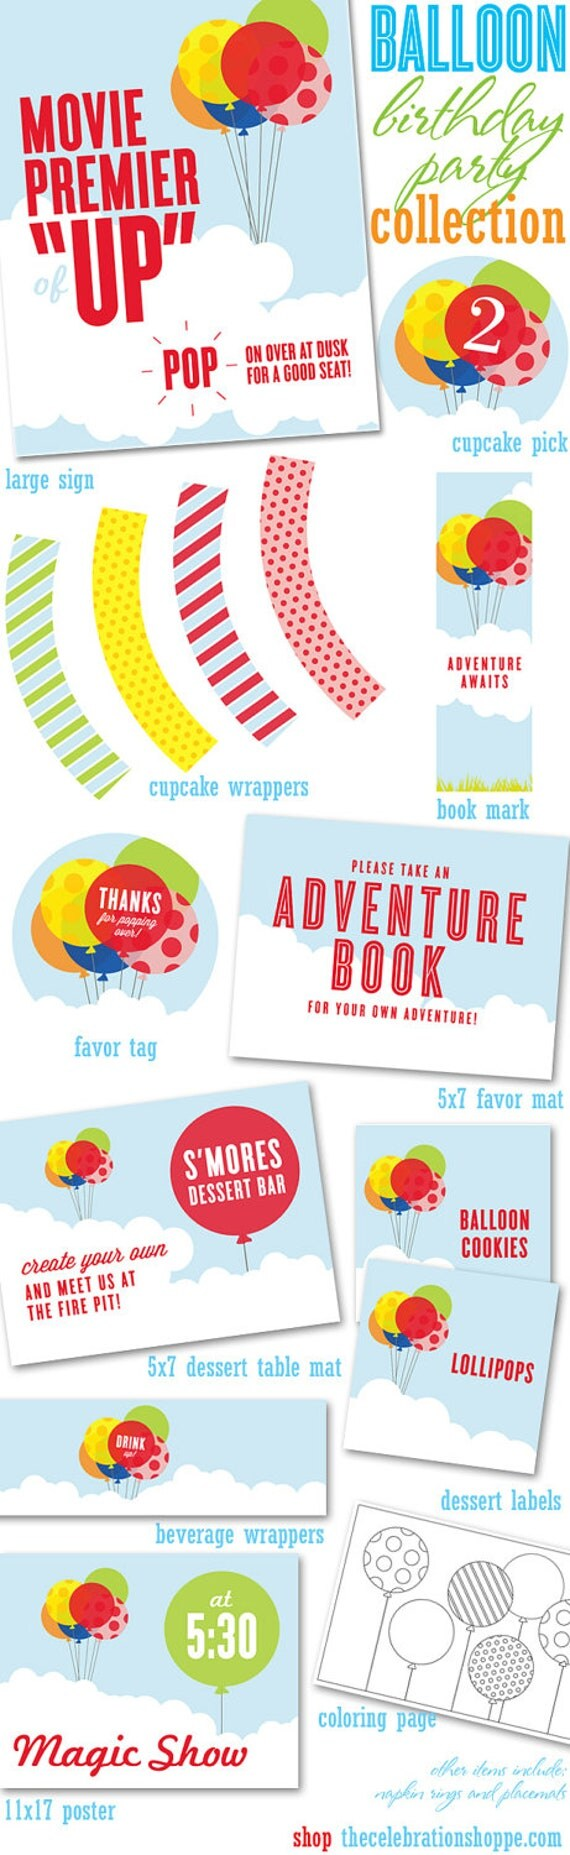 BALLOON Birthday PRINTABLE PARTY Collection from The Celebration Shoppe